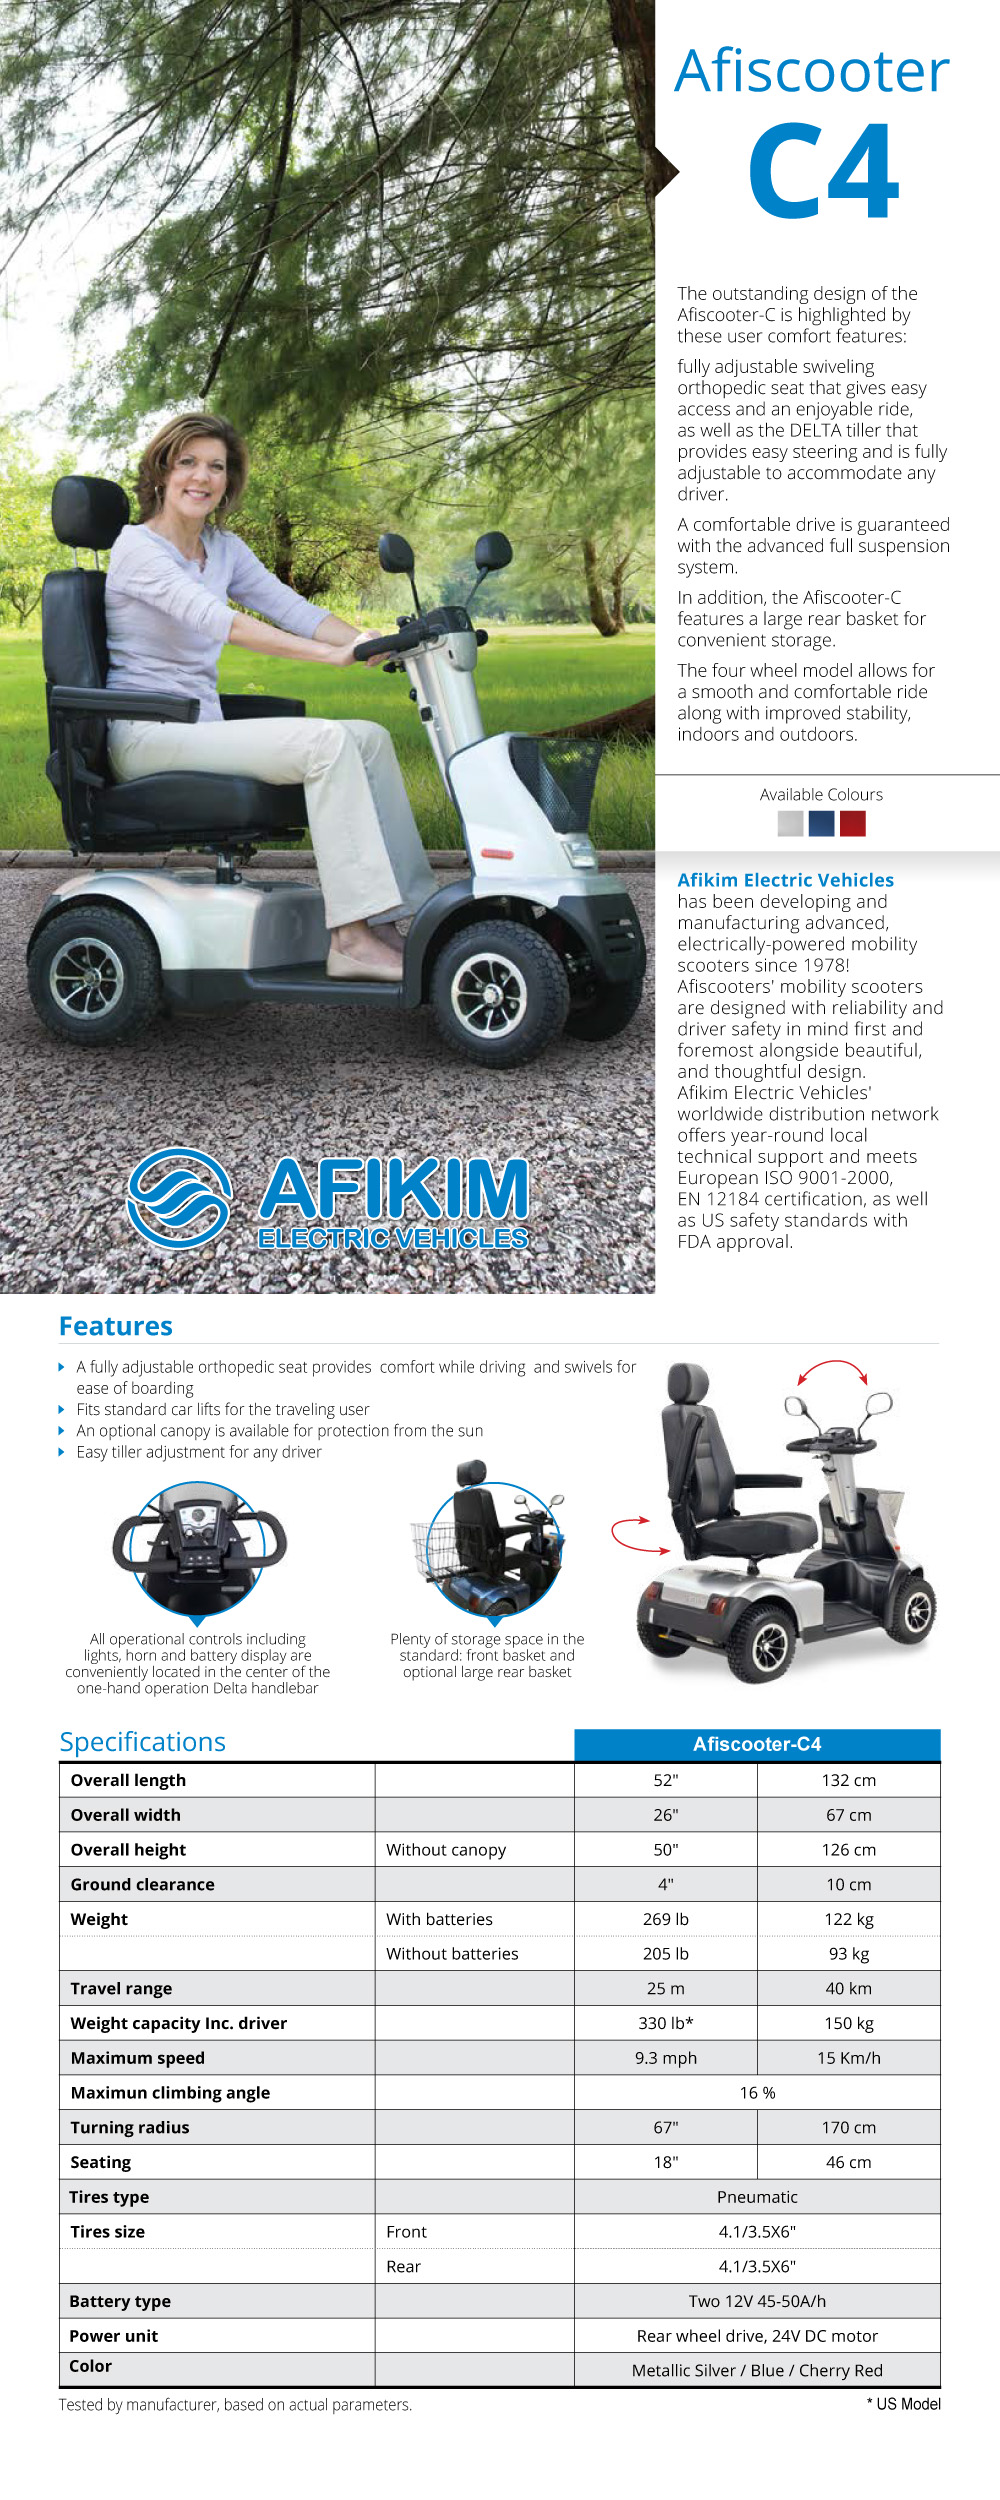 Afikim_Breeze_C4_4_wheel_scooter